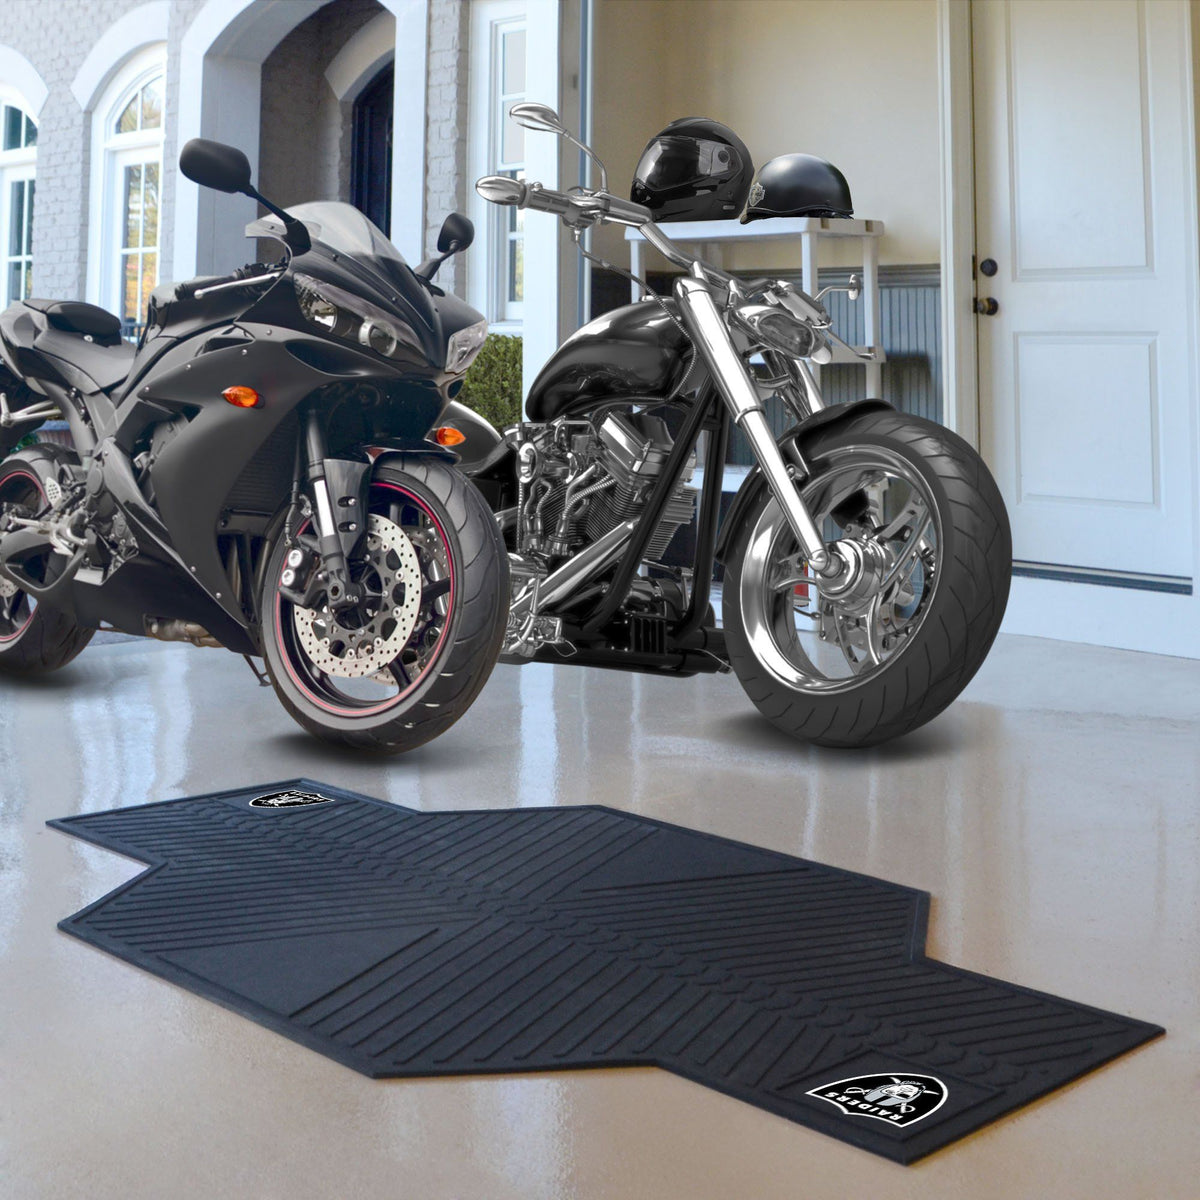 "NFL - Motorcycle Mat, 82.5"" x 42"" NFL Mats, Motorcycle Accessory, Motorcycle Mat, NFL, Auto Fan Mats Las Vegas Raiders"